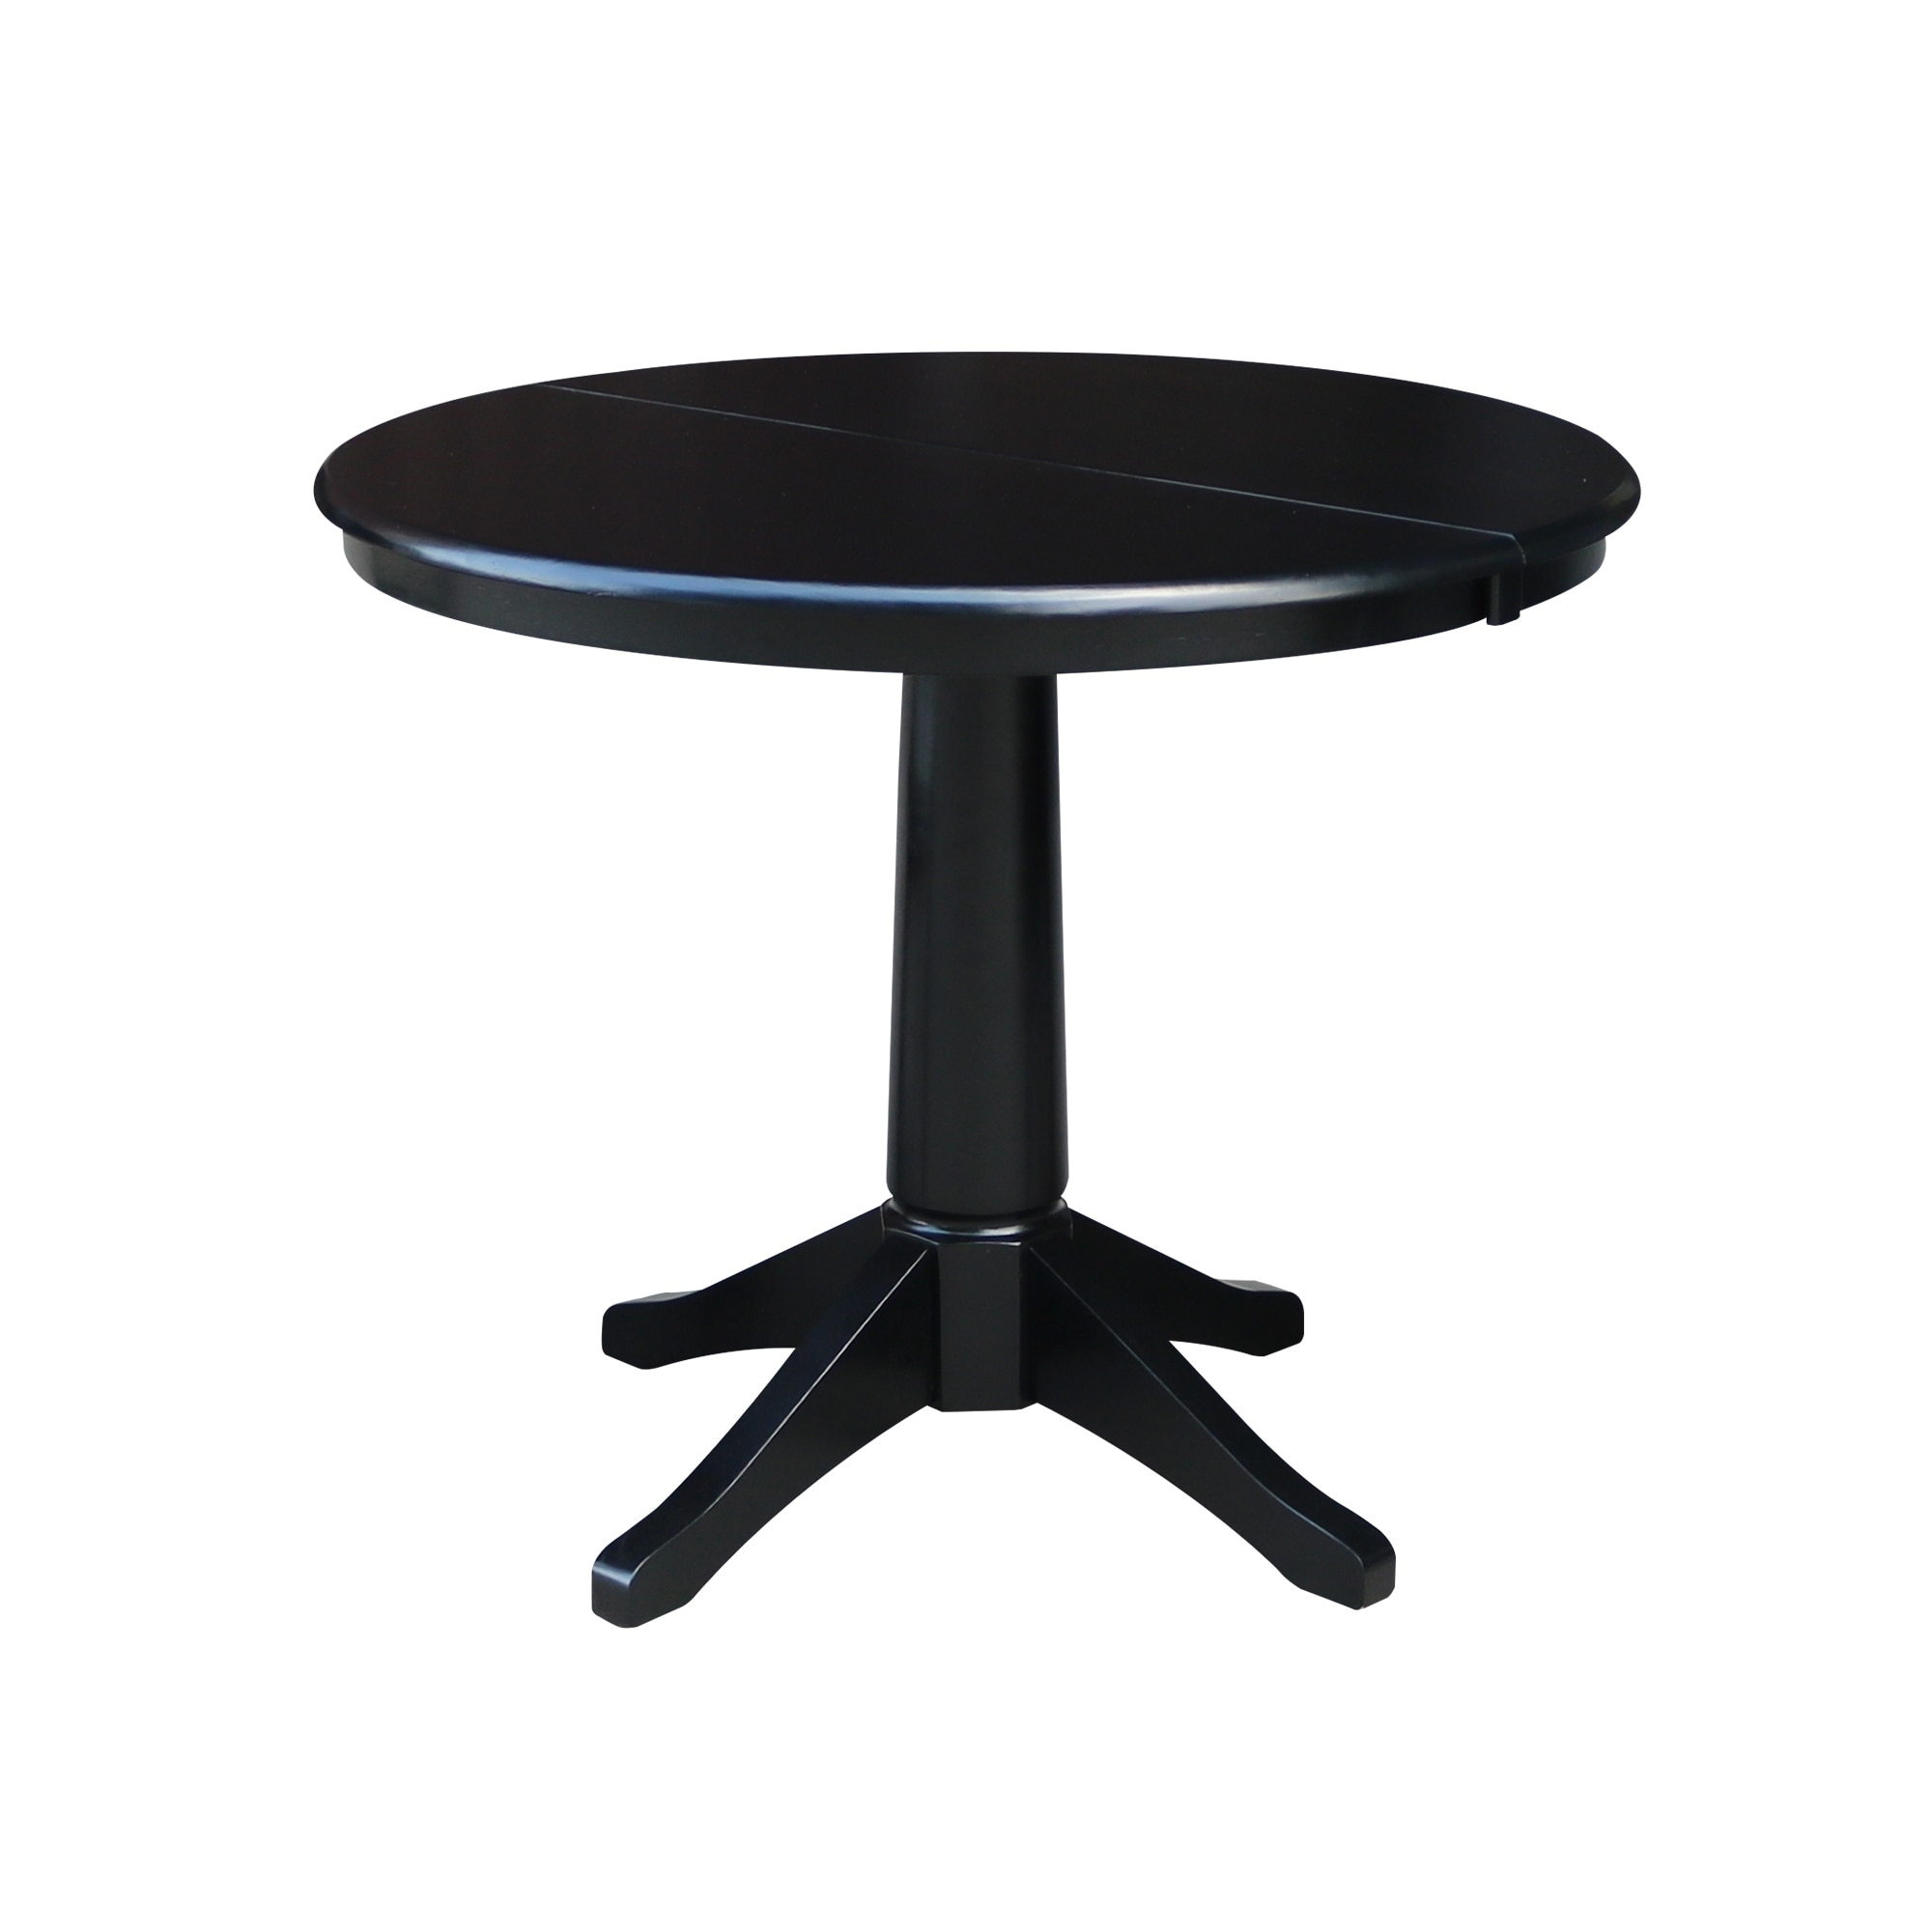 36 Round Top Dining Table With 12 Leaf Black Overstock 21800779